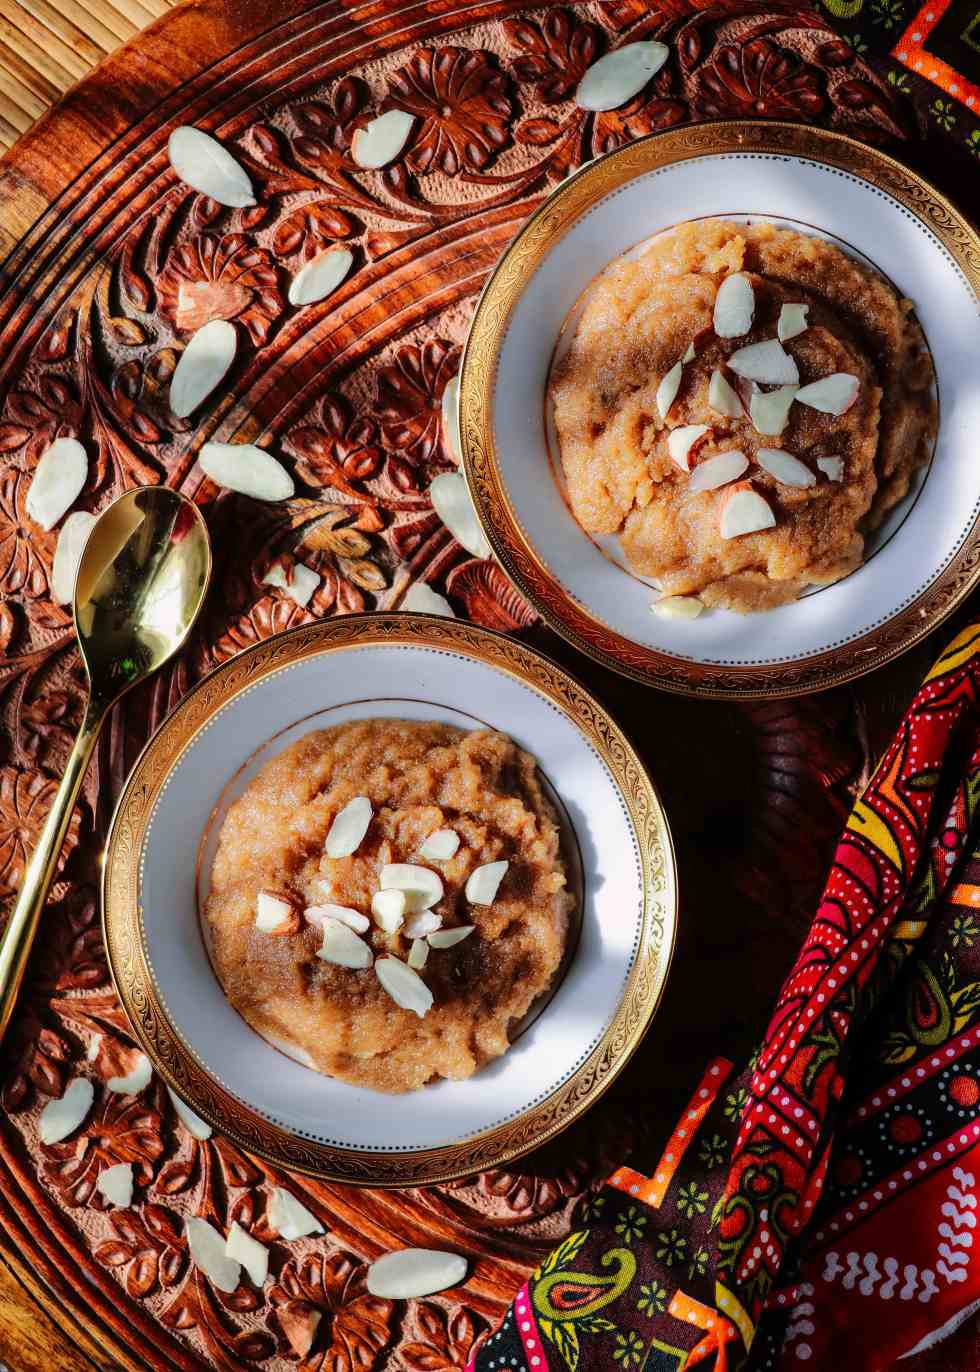 Halwa is a famous dessert that is prepared all over the world with various ingredients and in countless forms. This 20-minute recipe is prepared with semolina in the Pakistani and North Indian style.